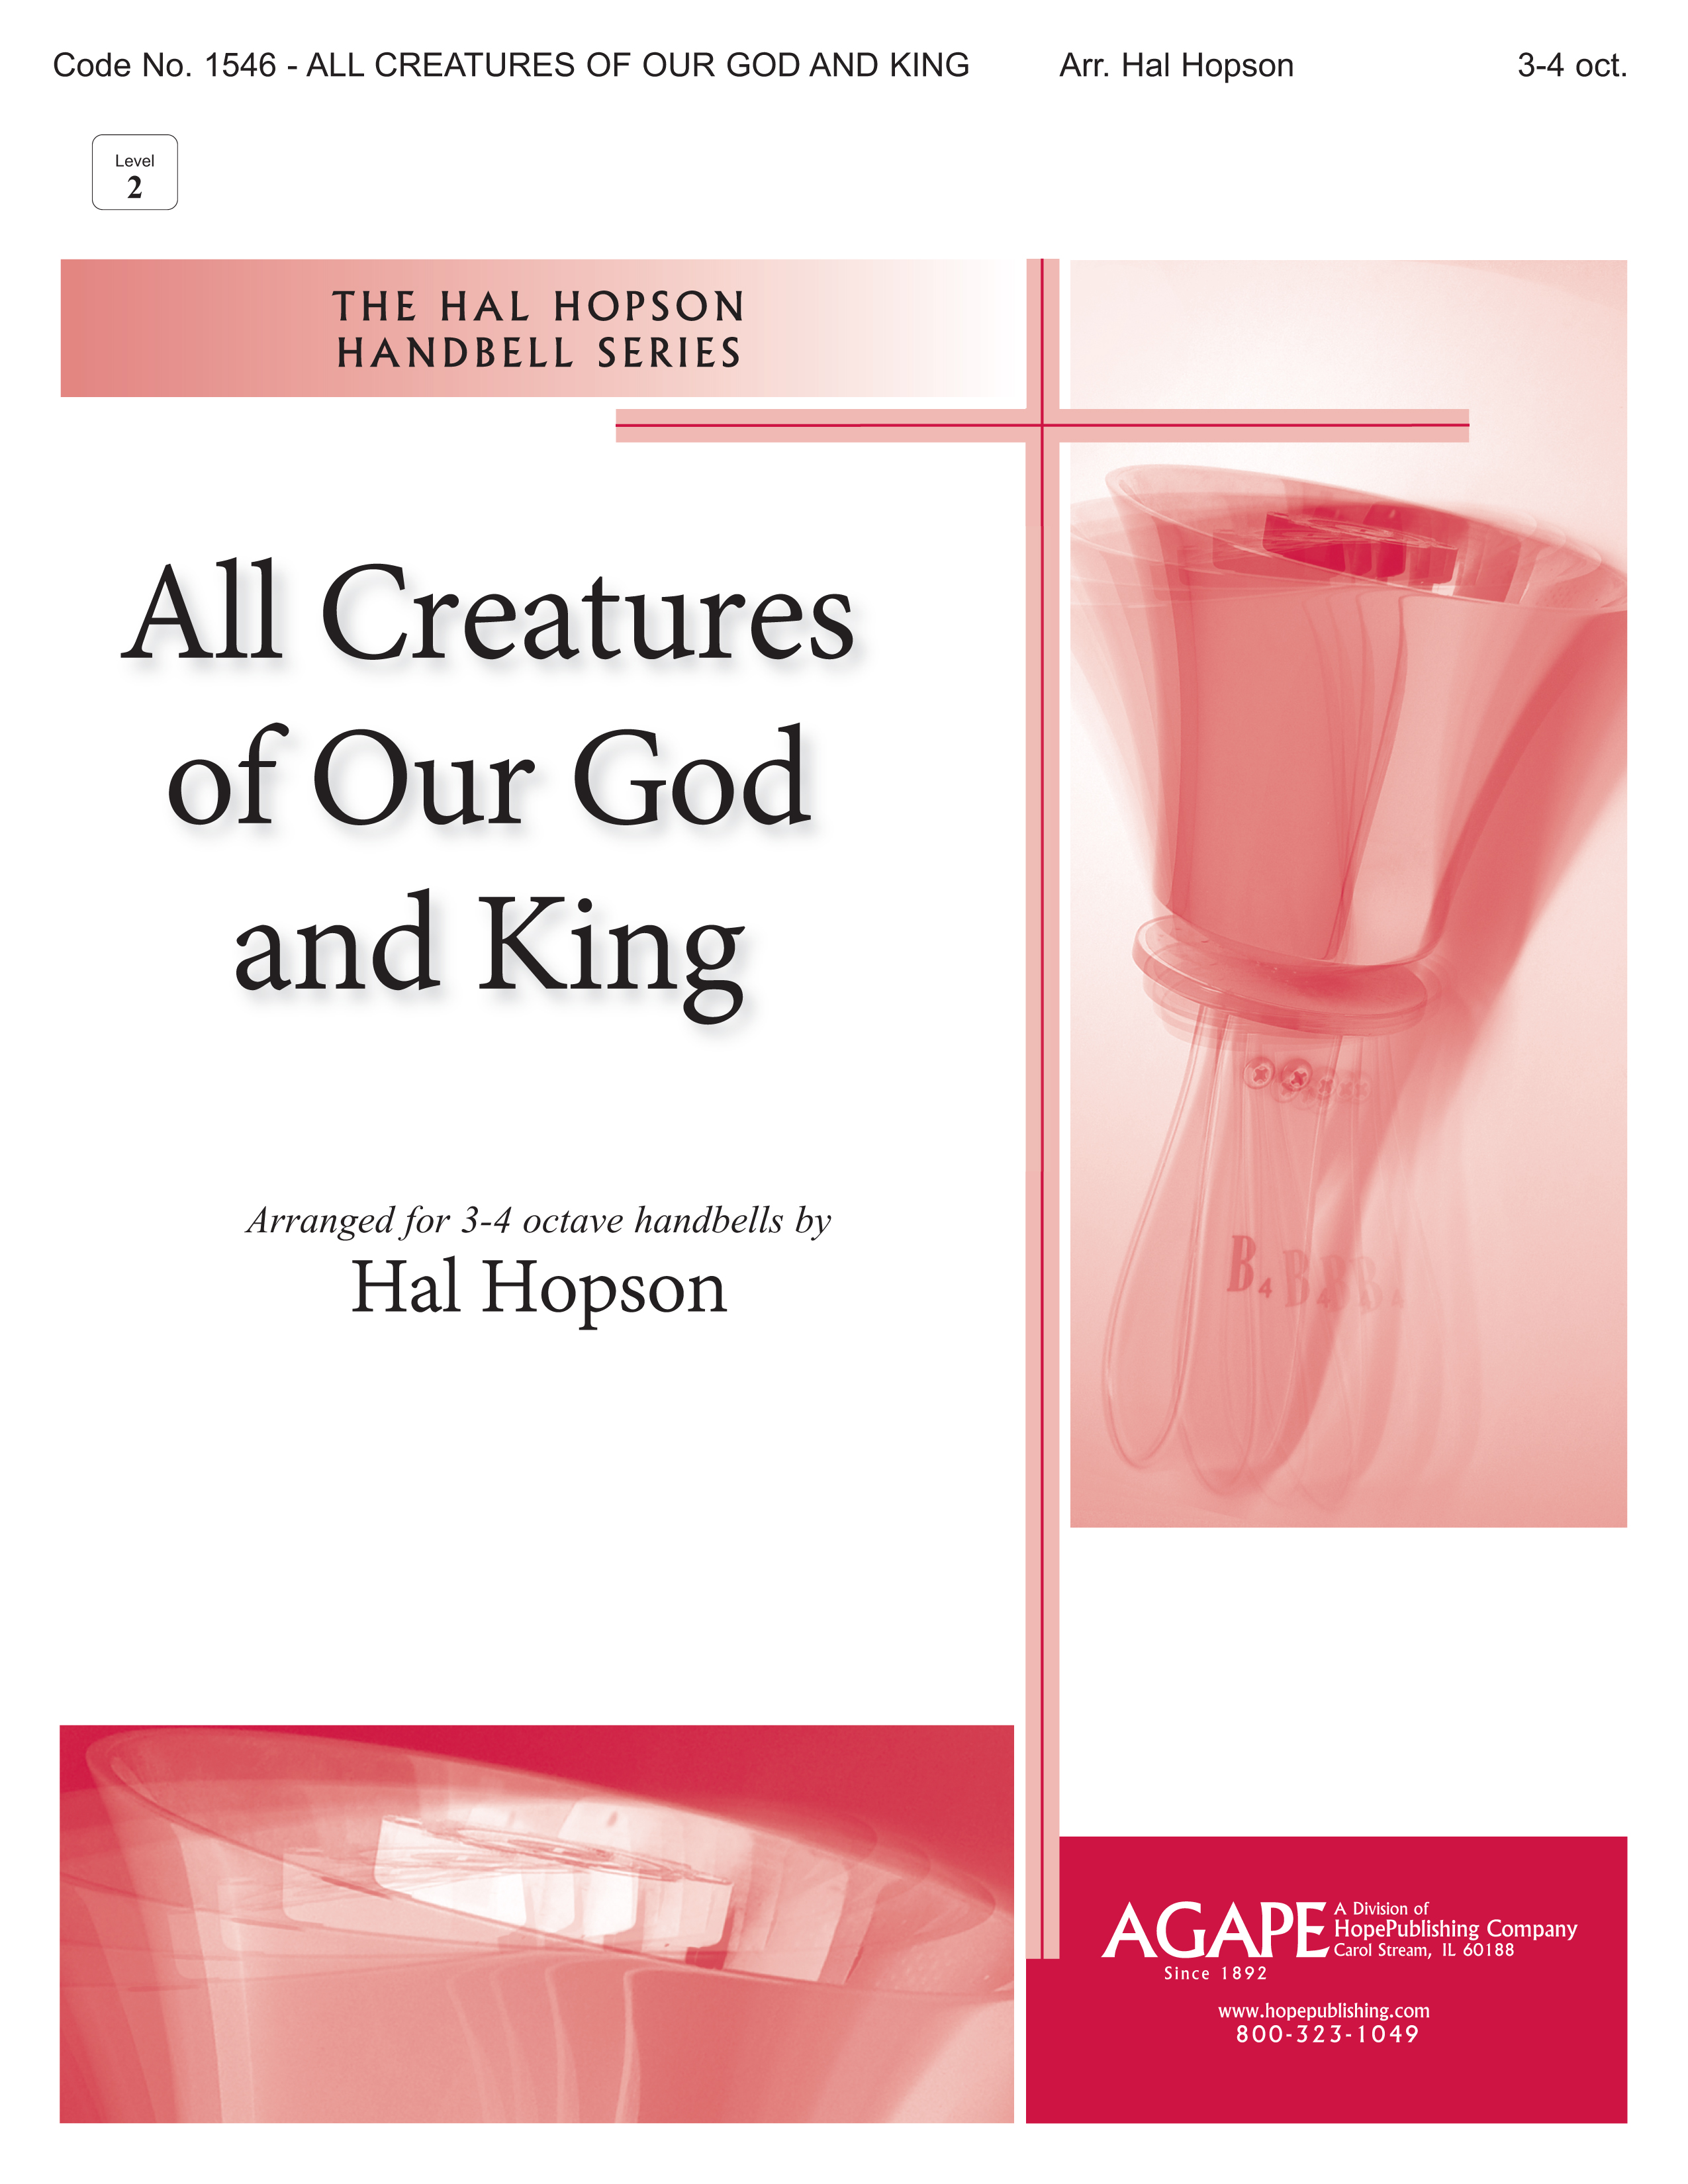 All Creatures of Our God and King - 3-4 Octave Cover Image